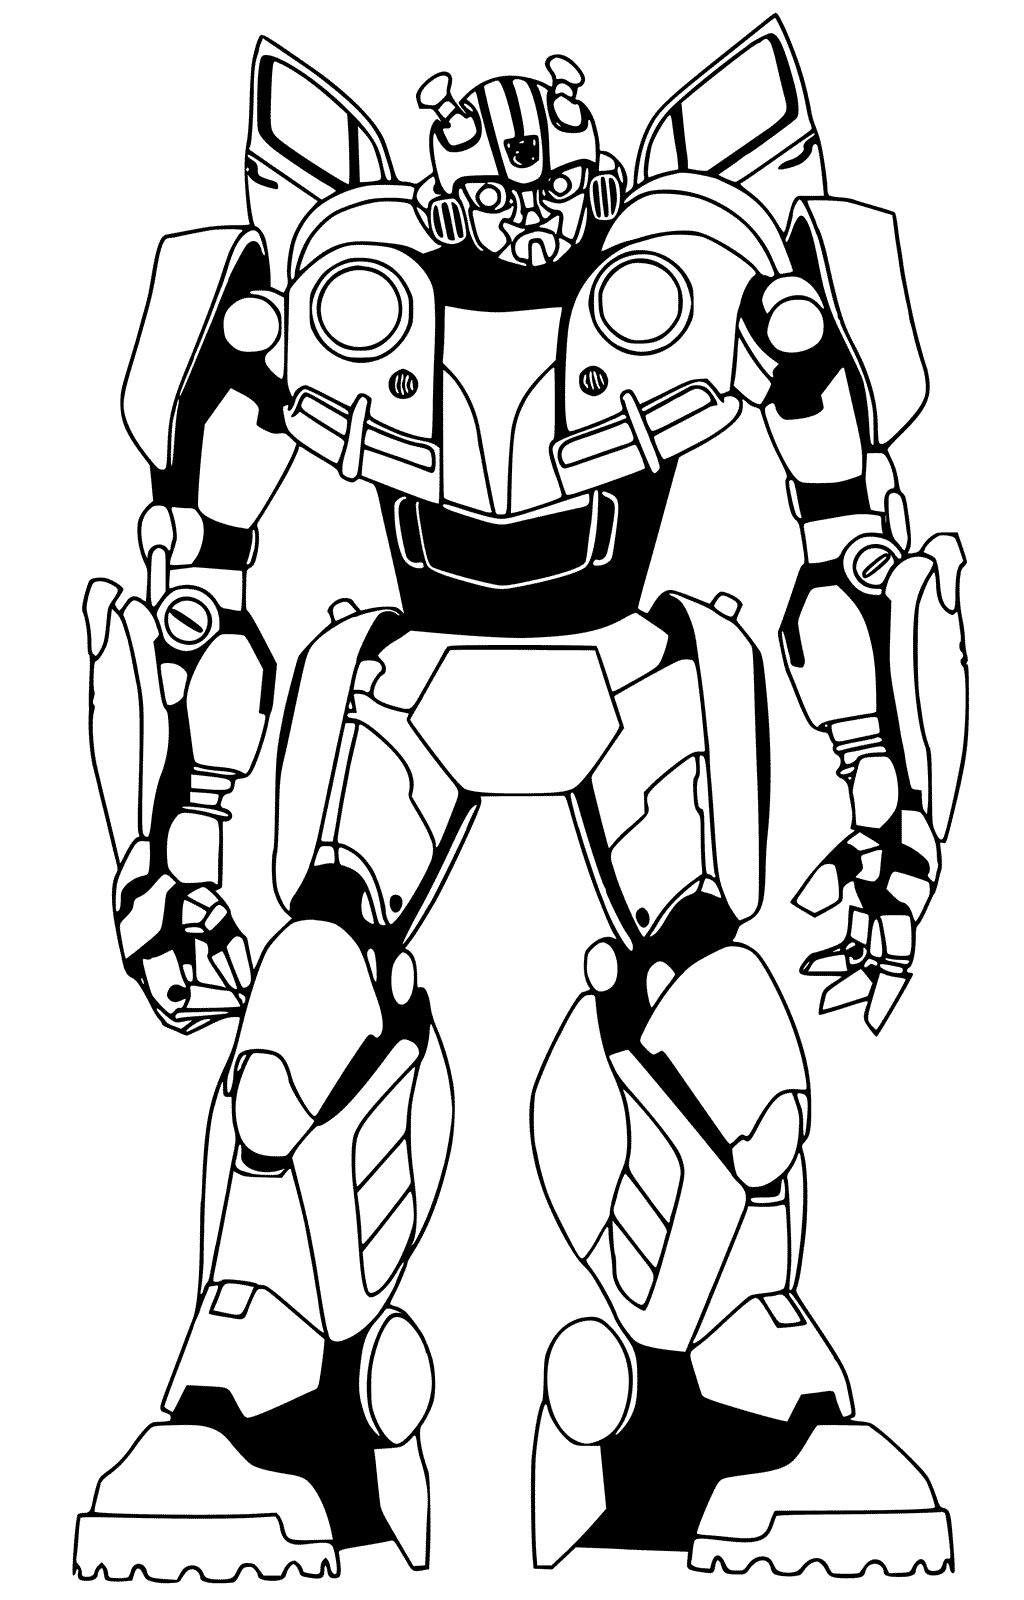 coloring transformer bumblebee bumble bee from transformers free colouring pages coloring bumblebee transformer